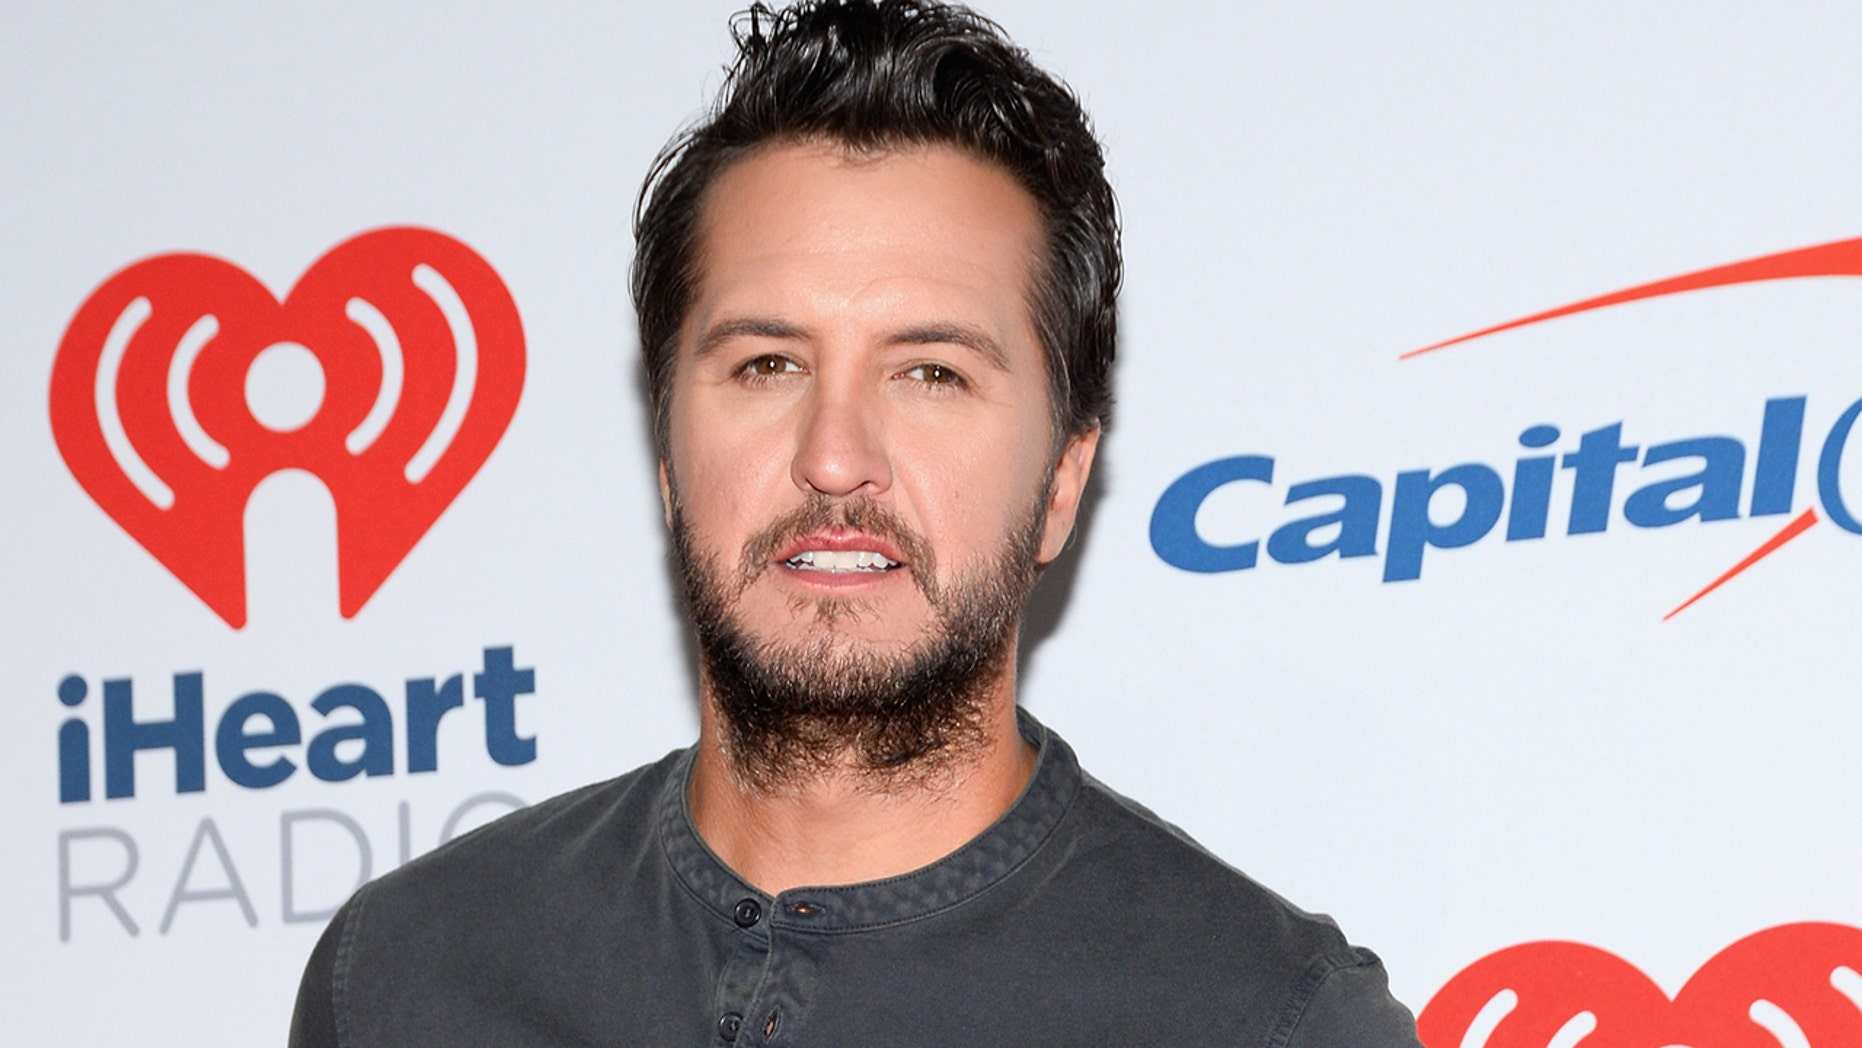 Luke Bryan's mother was reportedly affected by Hurricane Michael.